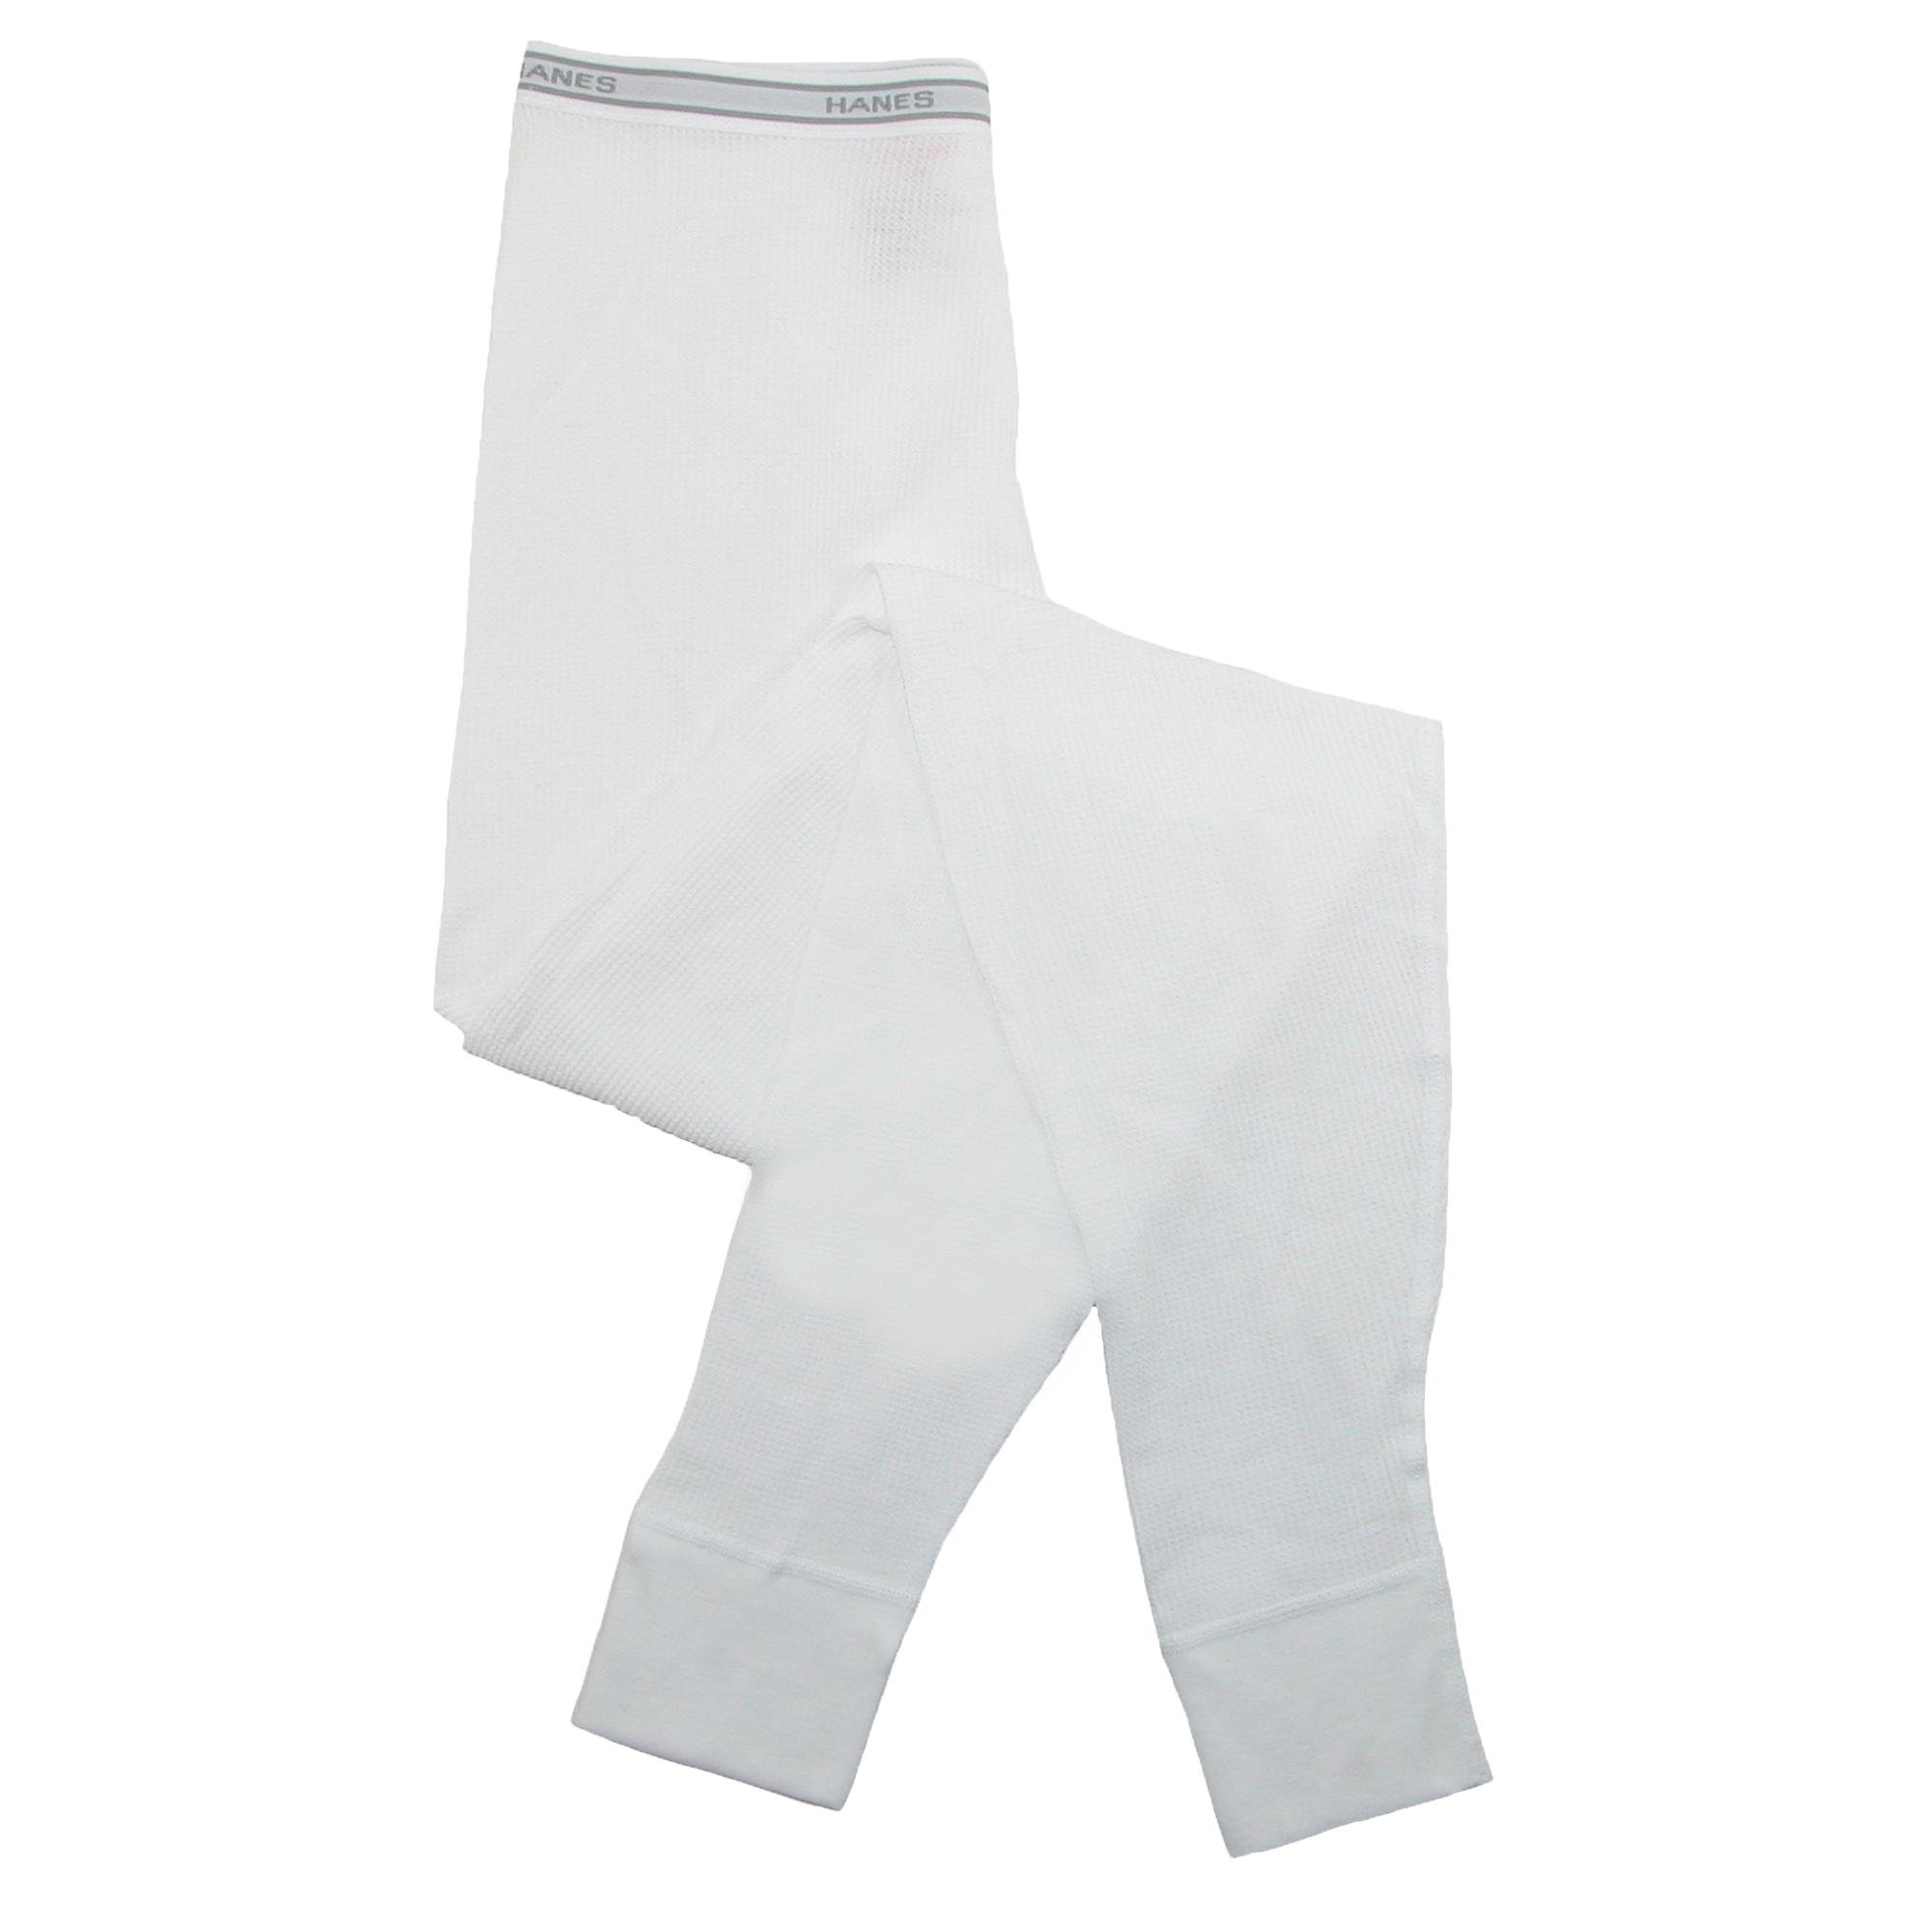 Hanes Women's Thermal Pants, Small, White